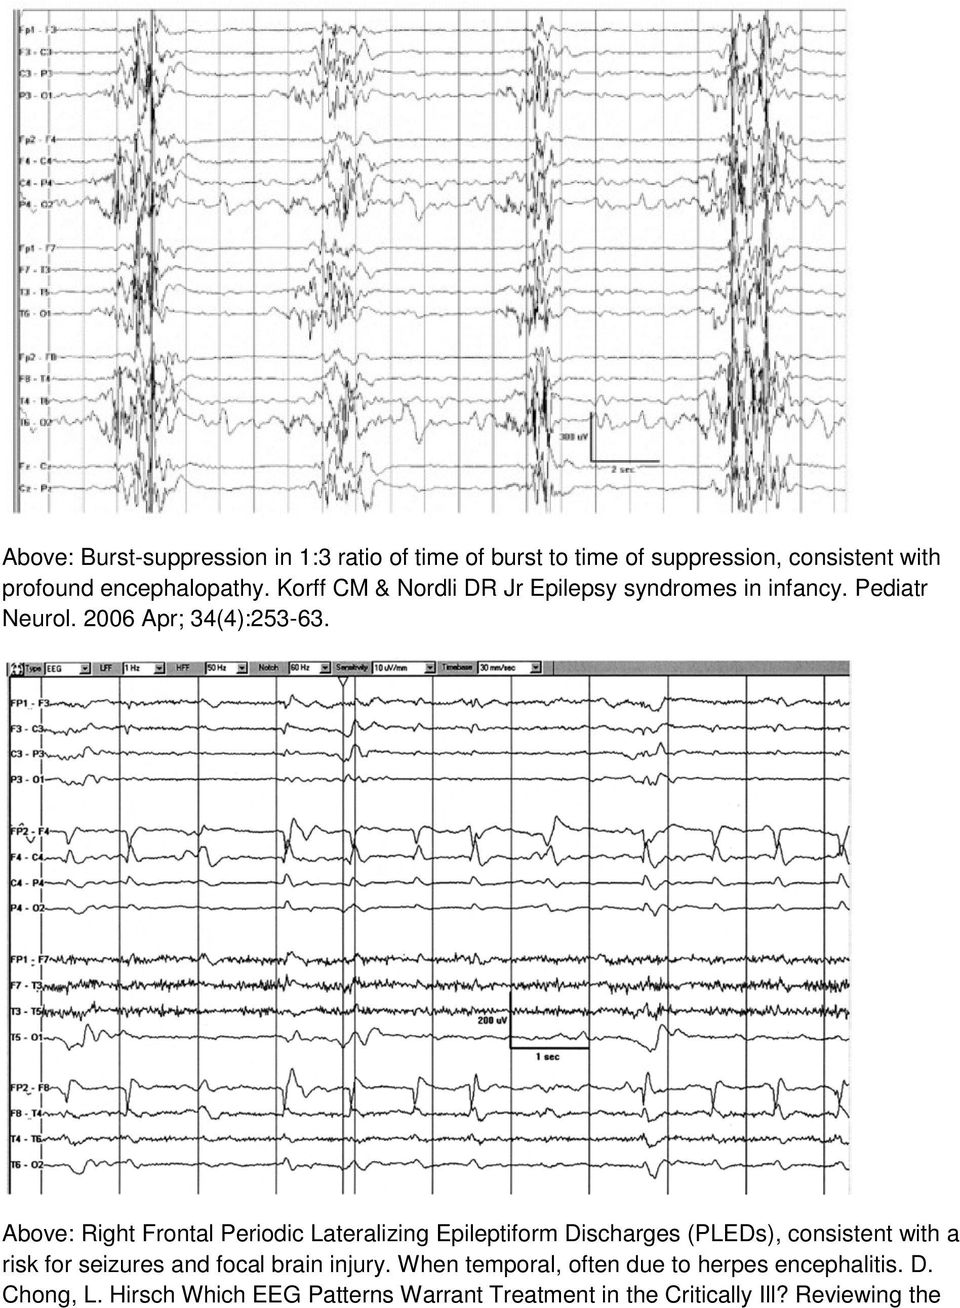 Above: Right Frontal Periodic Lateralizing Epileptiform Discharges (PLEDs), consistent with a risk for seizures and focal